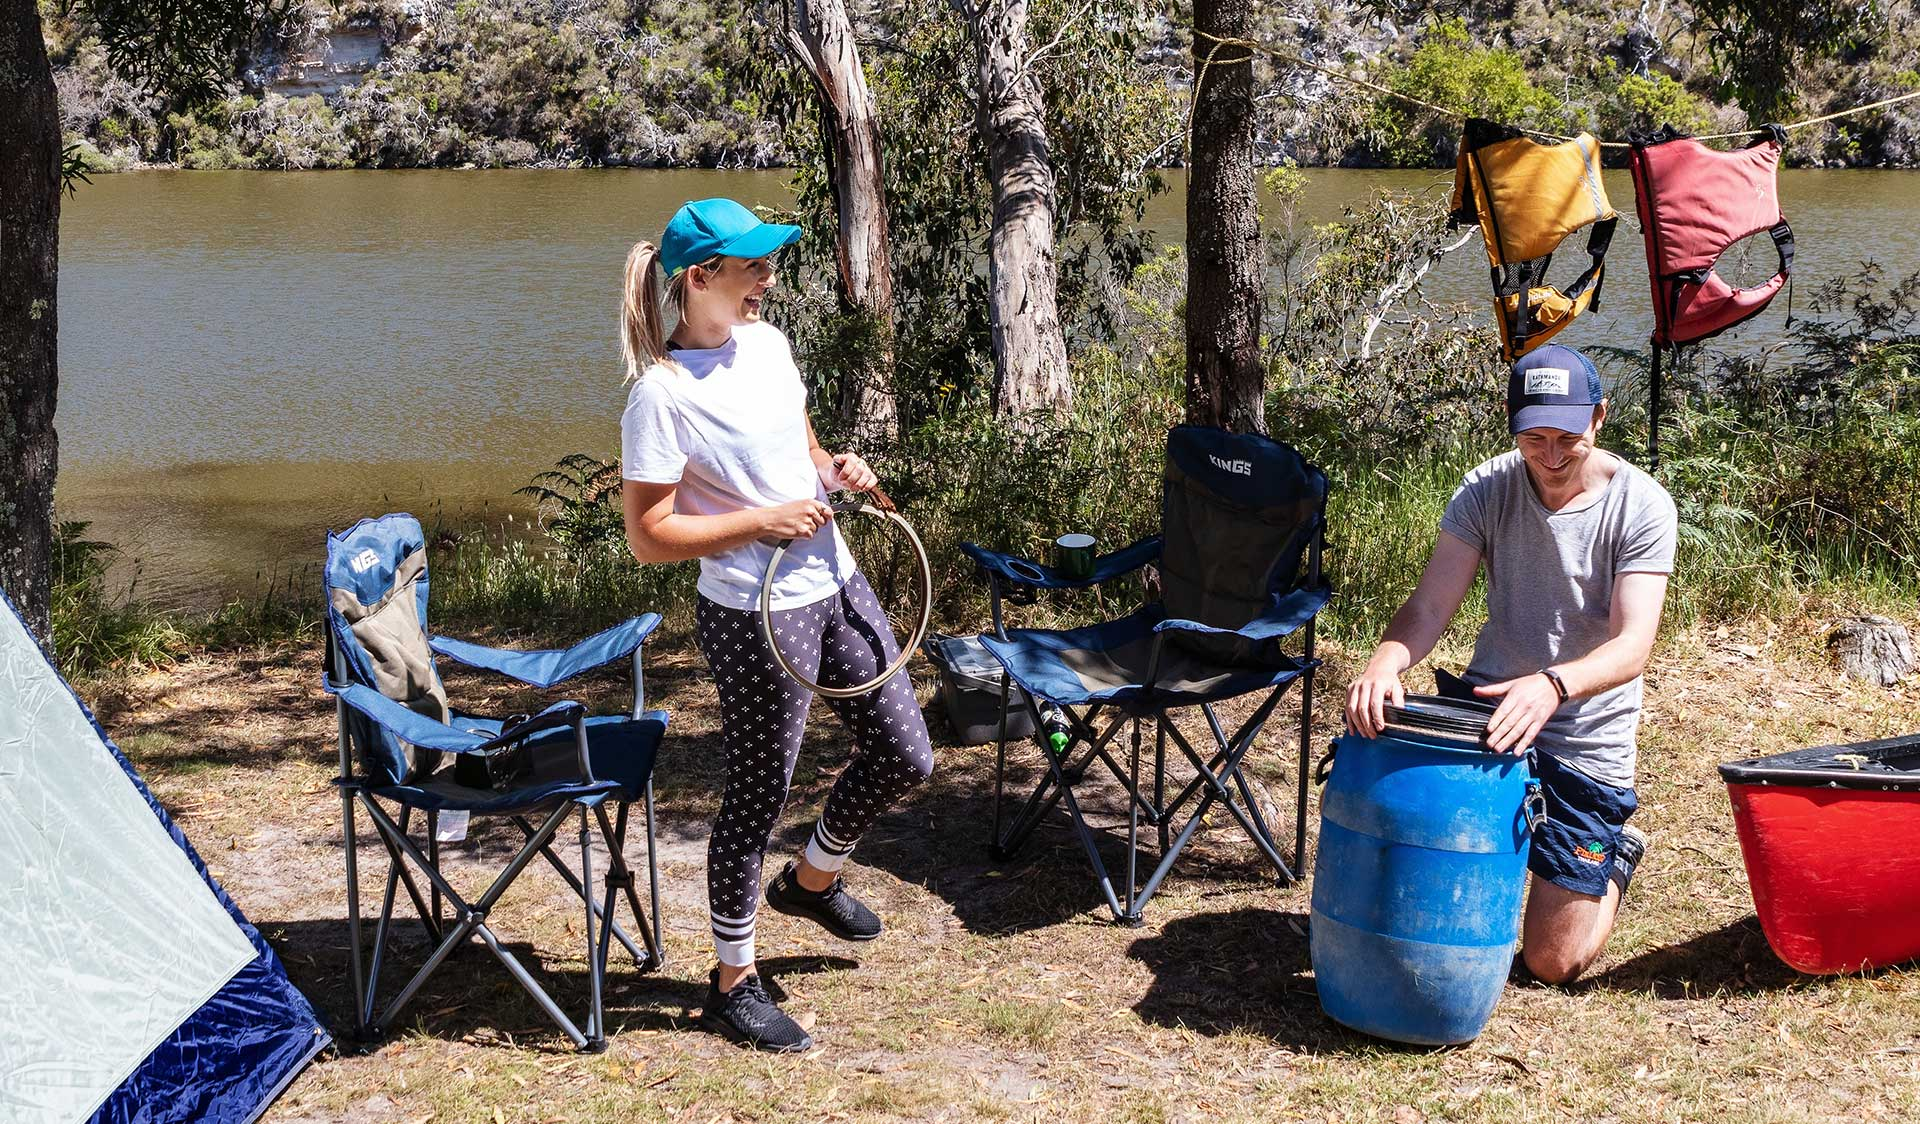 A couple unpack their waterproof barrel at a campsite in the Lower Glenelg National Park.